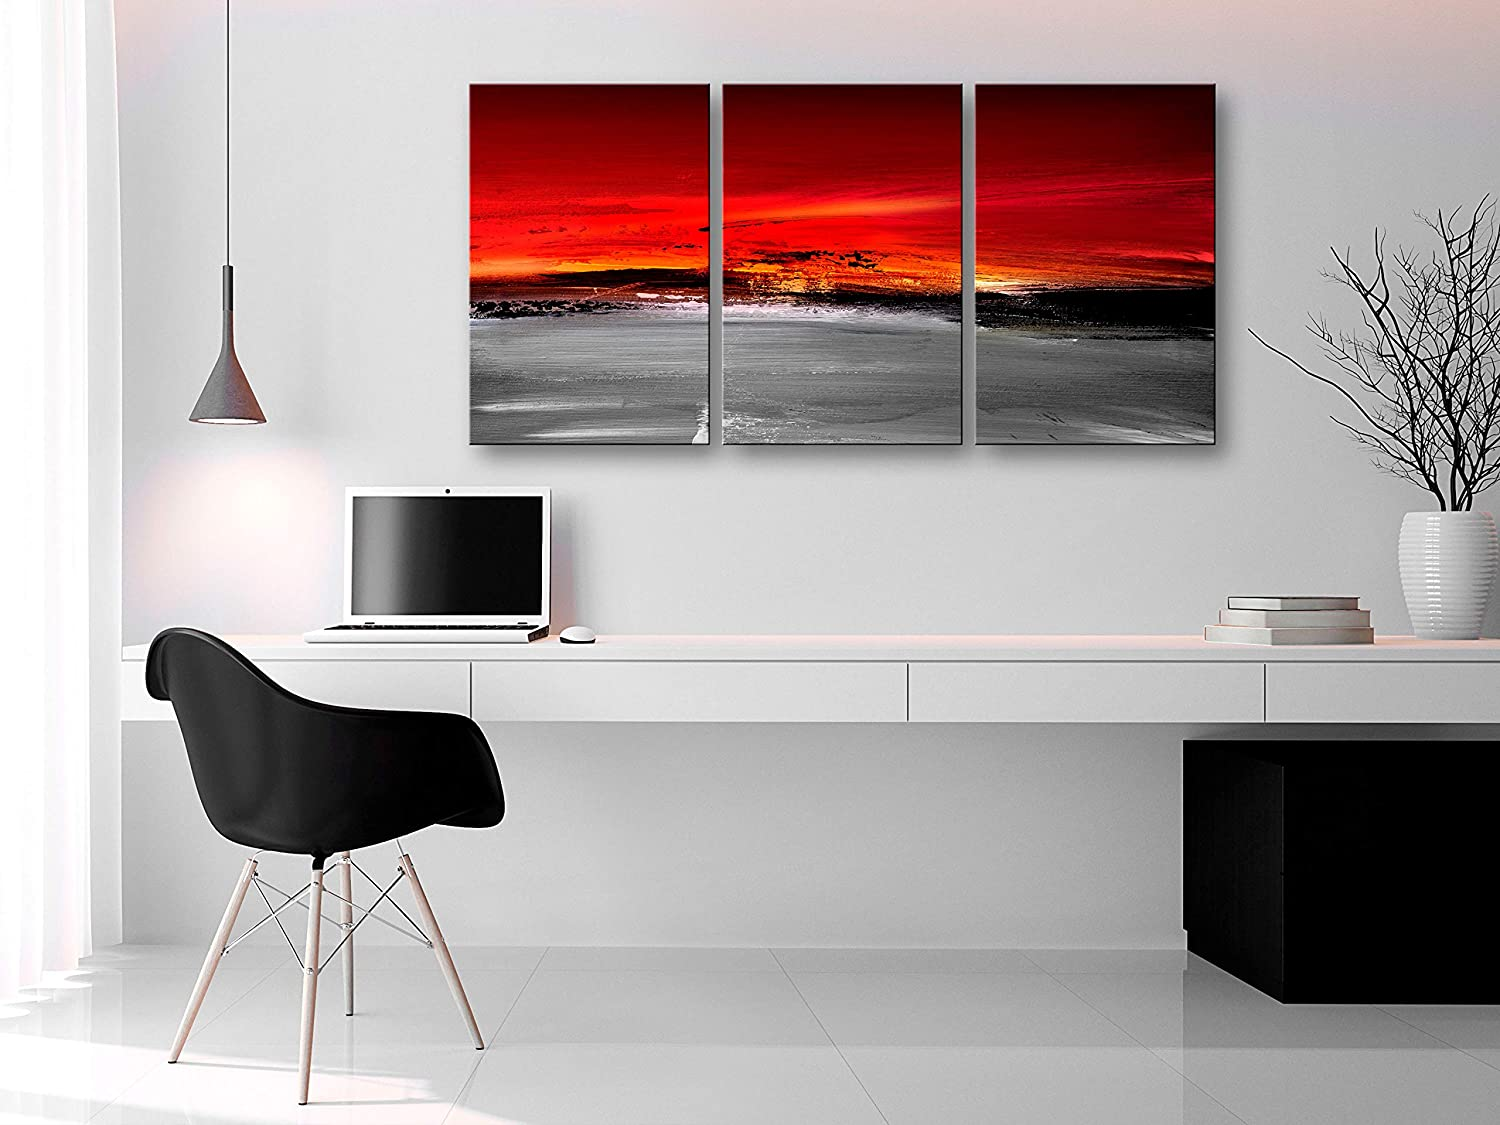 Photo Like Painted Blue Brown f-A-0735-b-e Wall Art Print Picture murando Image Abstract 60x30 cm 3 Pieces Image Printed on Non Woven Canvas